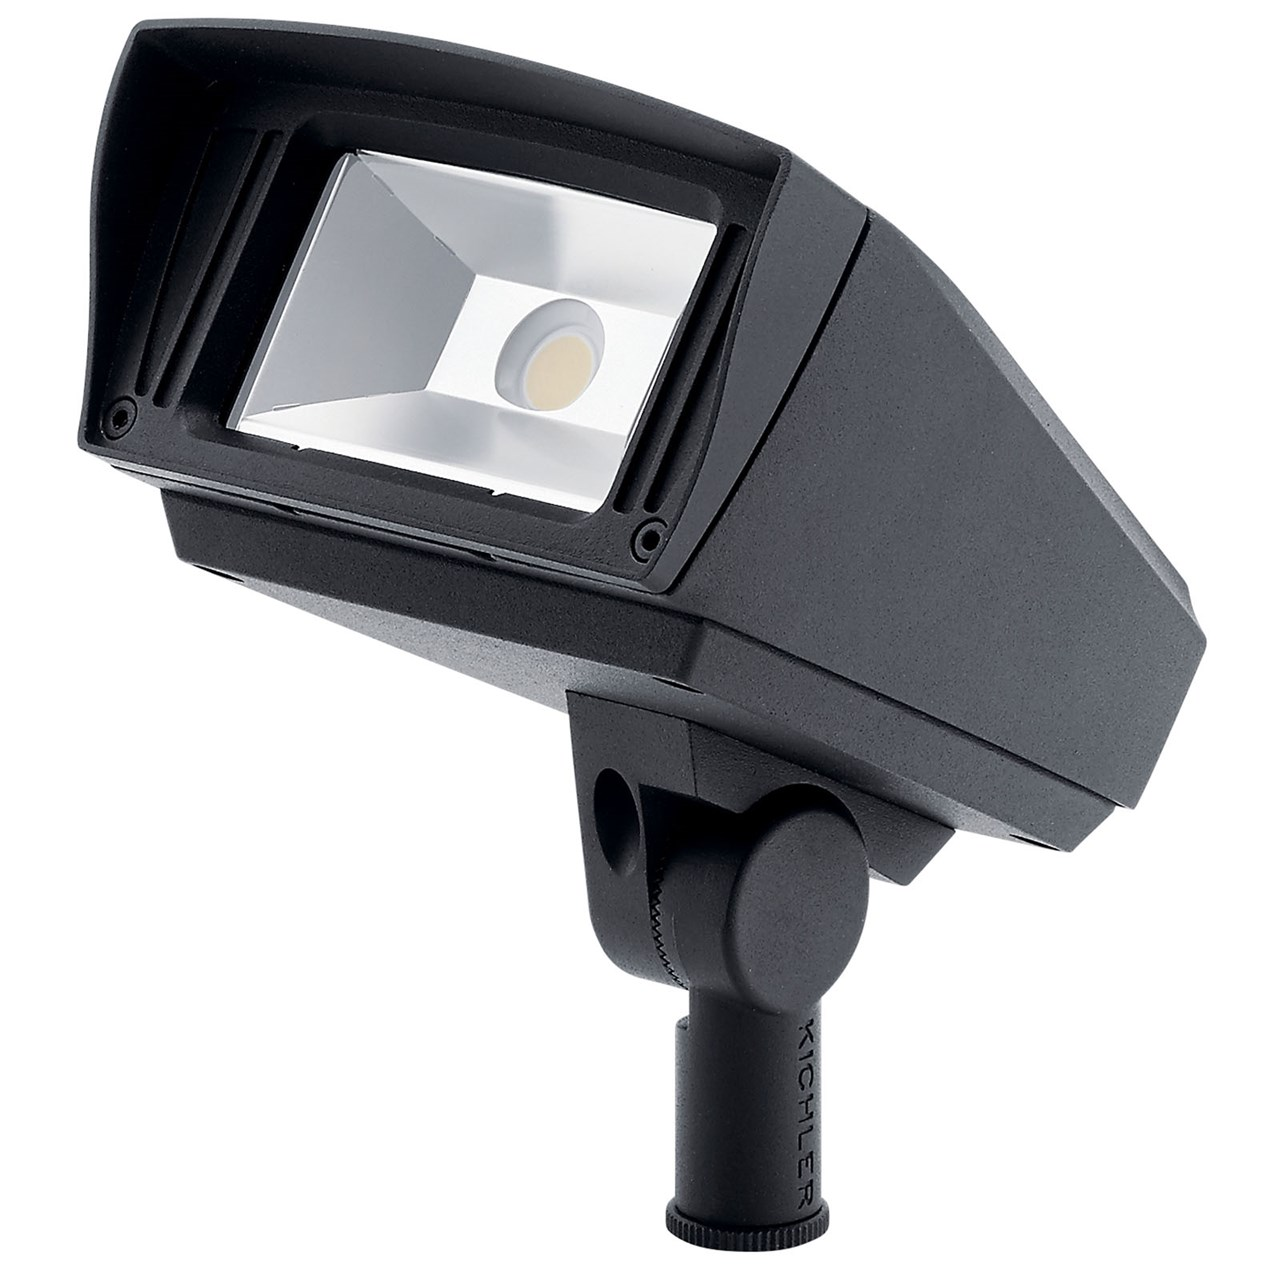 VLO 3000K 6x5 LED Flood Textured Black